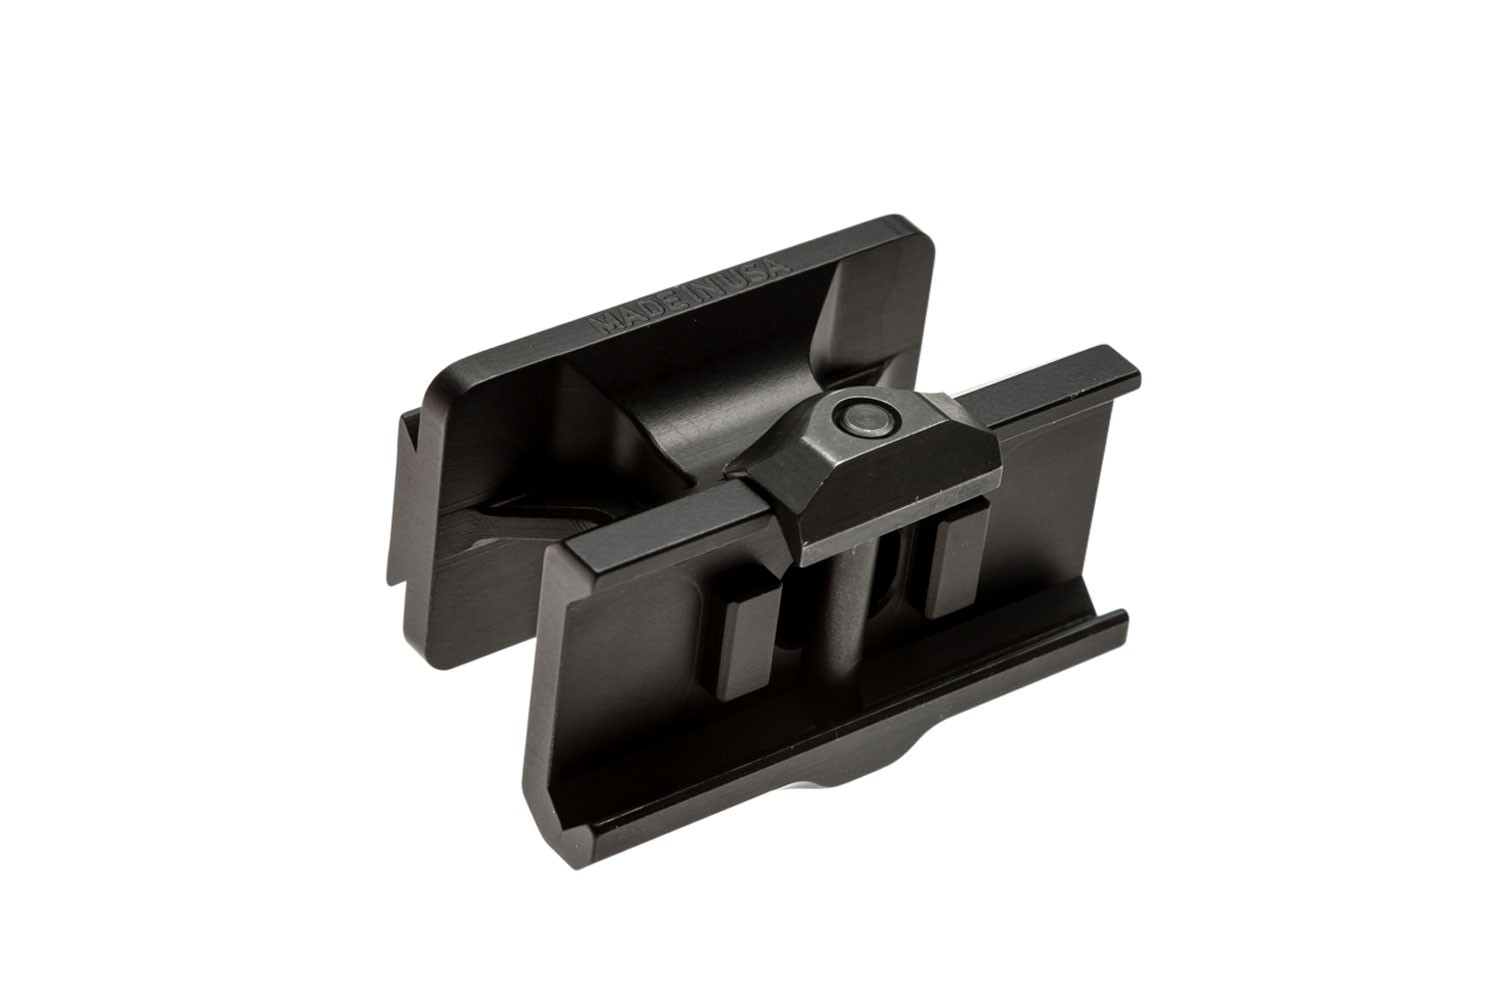 Reptilia DOT Mount, Lower 1/3 Co-Witness, Fits Aimpoint ARCO, Anodized Black 100-026